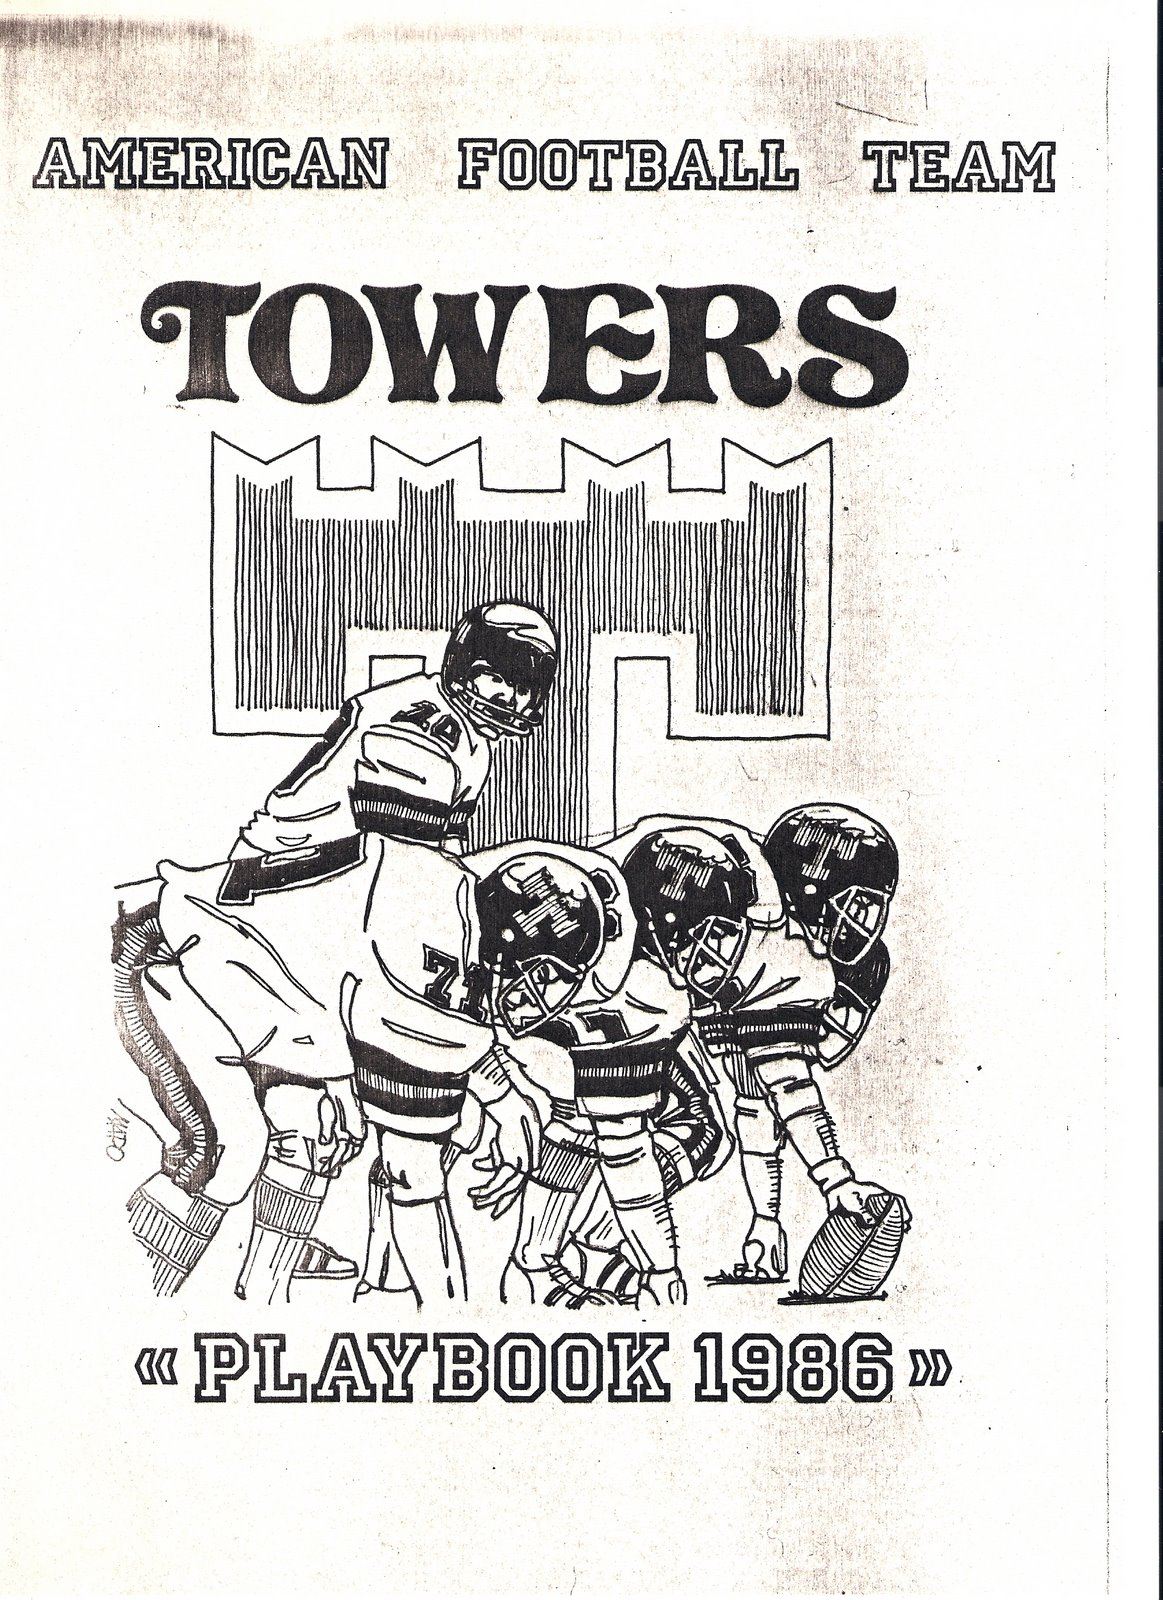 Il playbook 1986 dei Towers